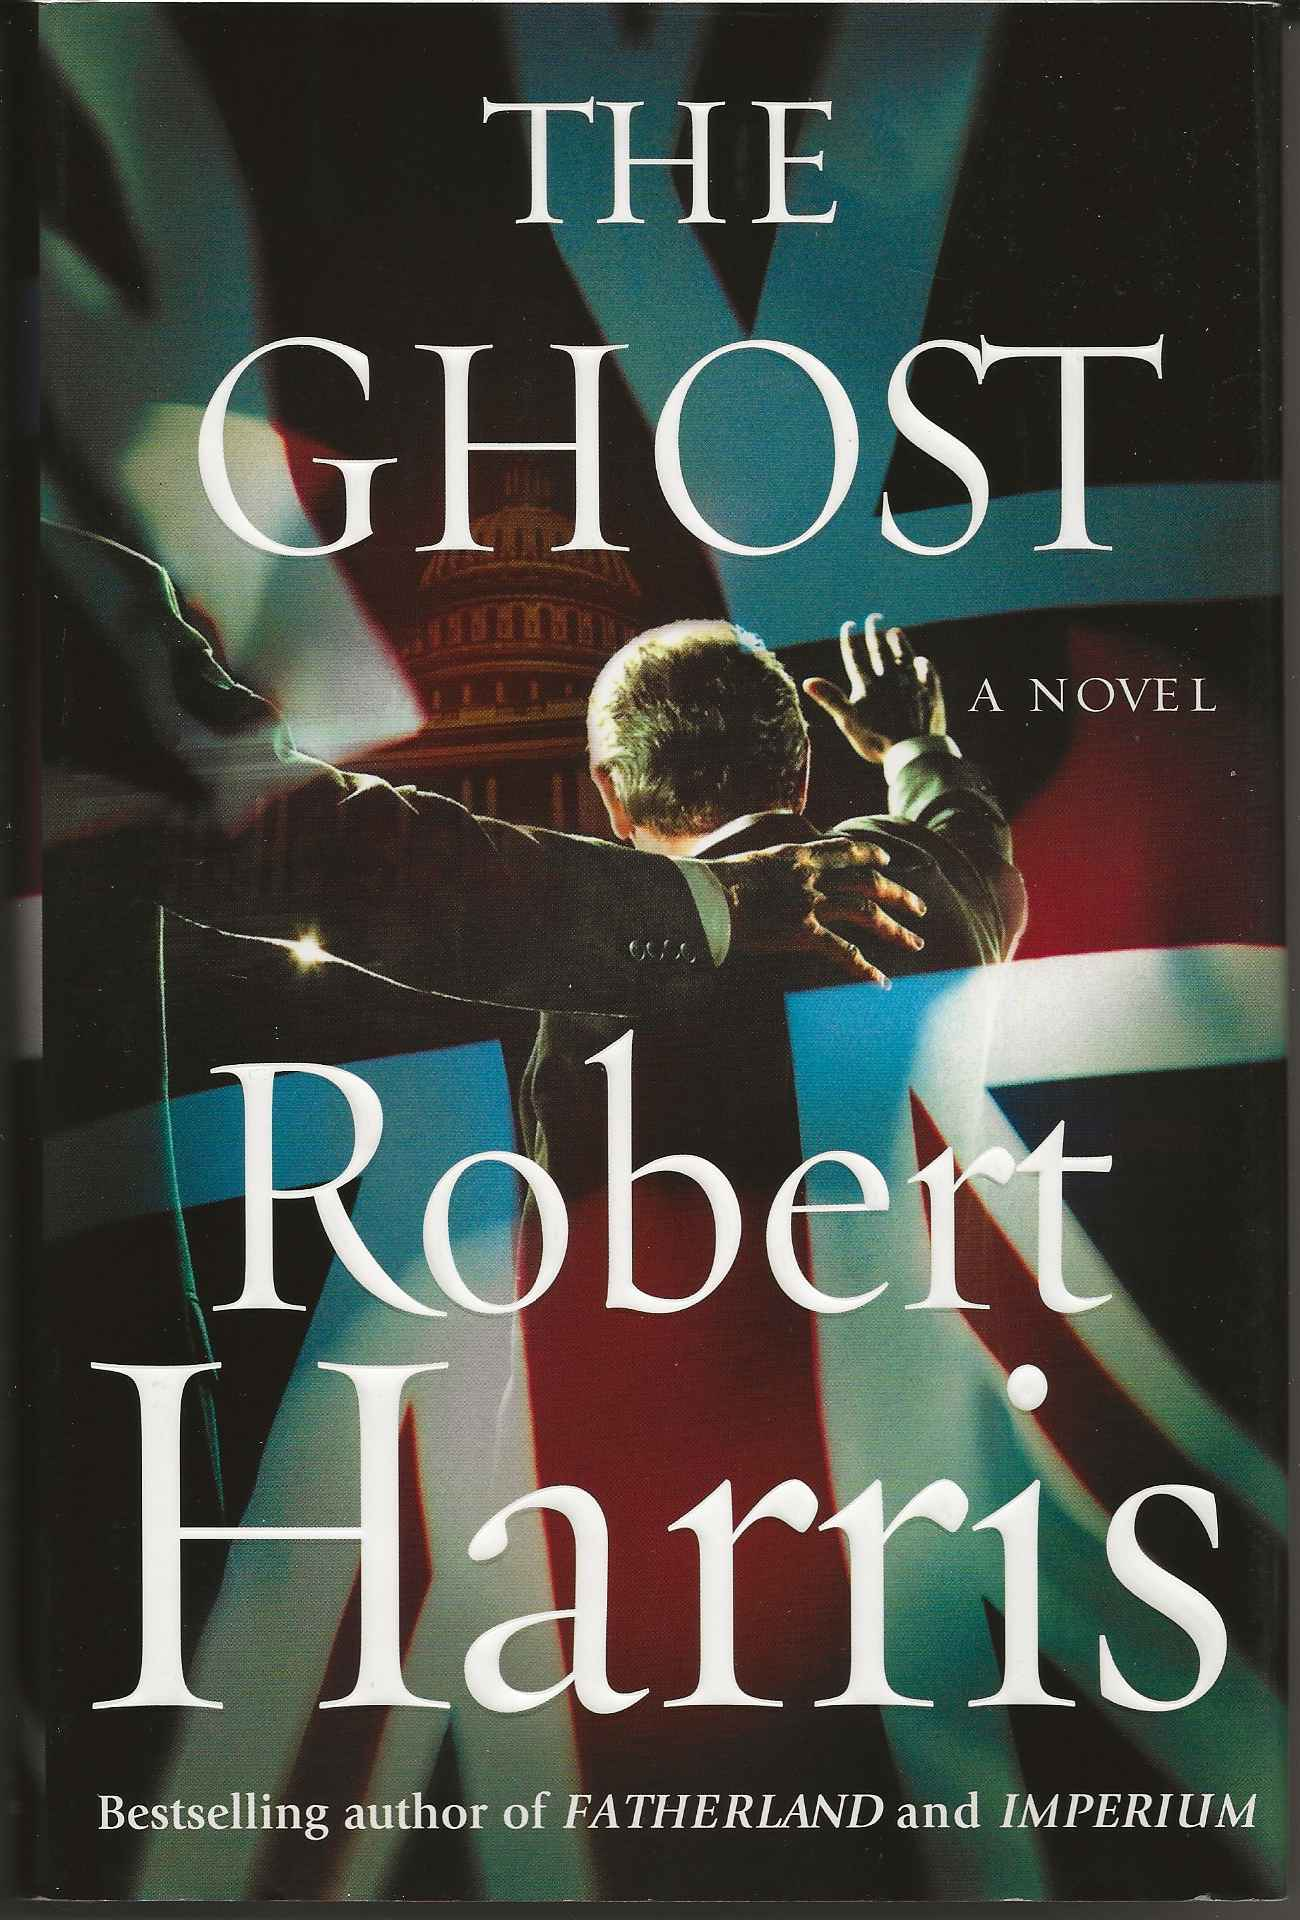 Image for THE GHOST A Novel